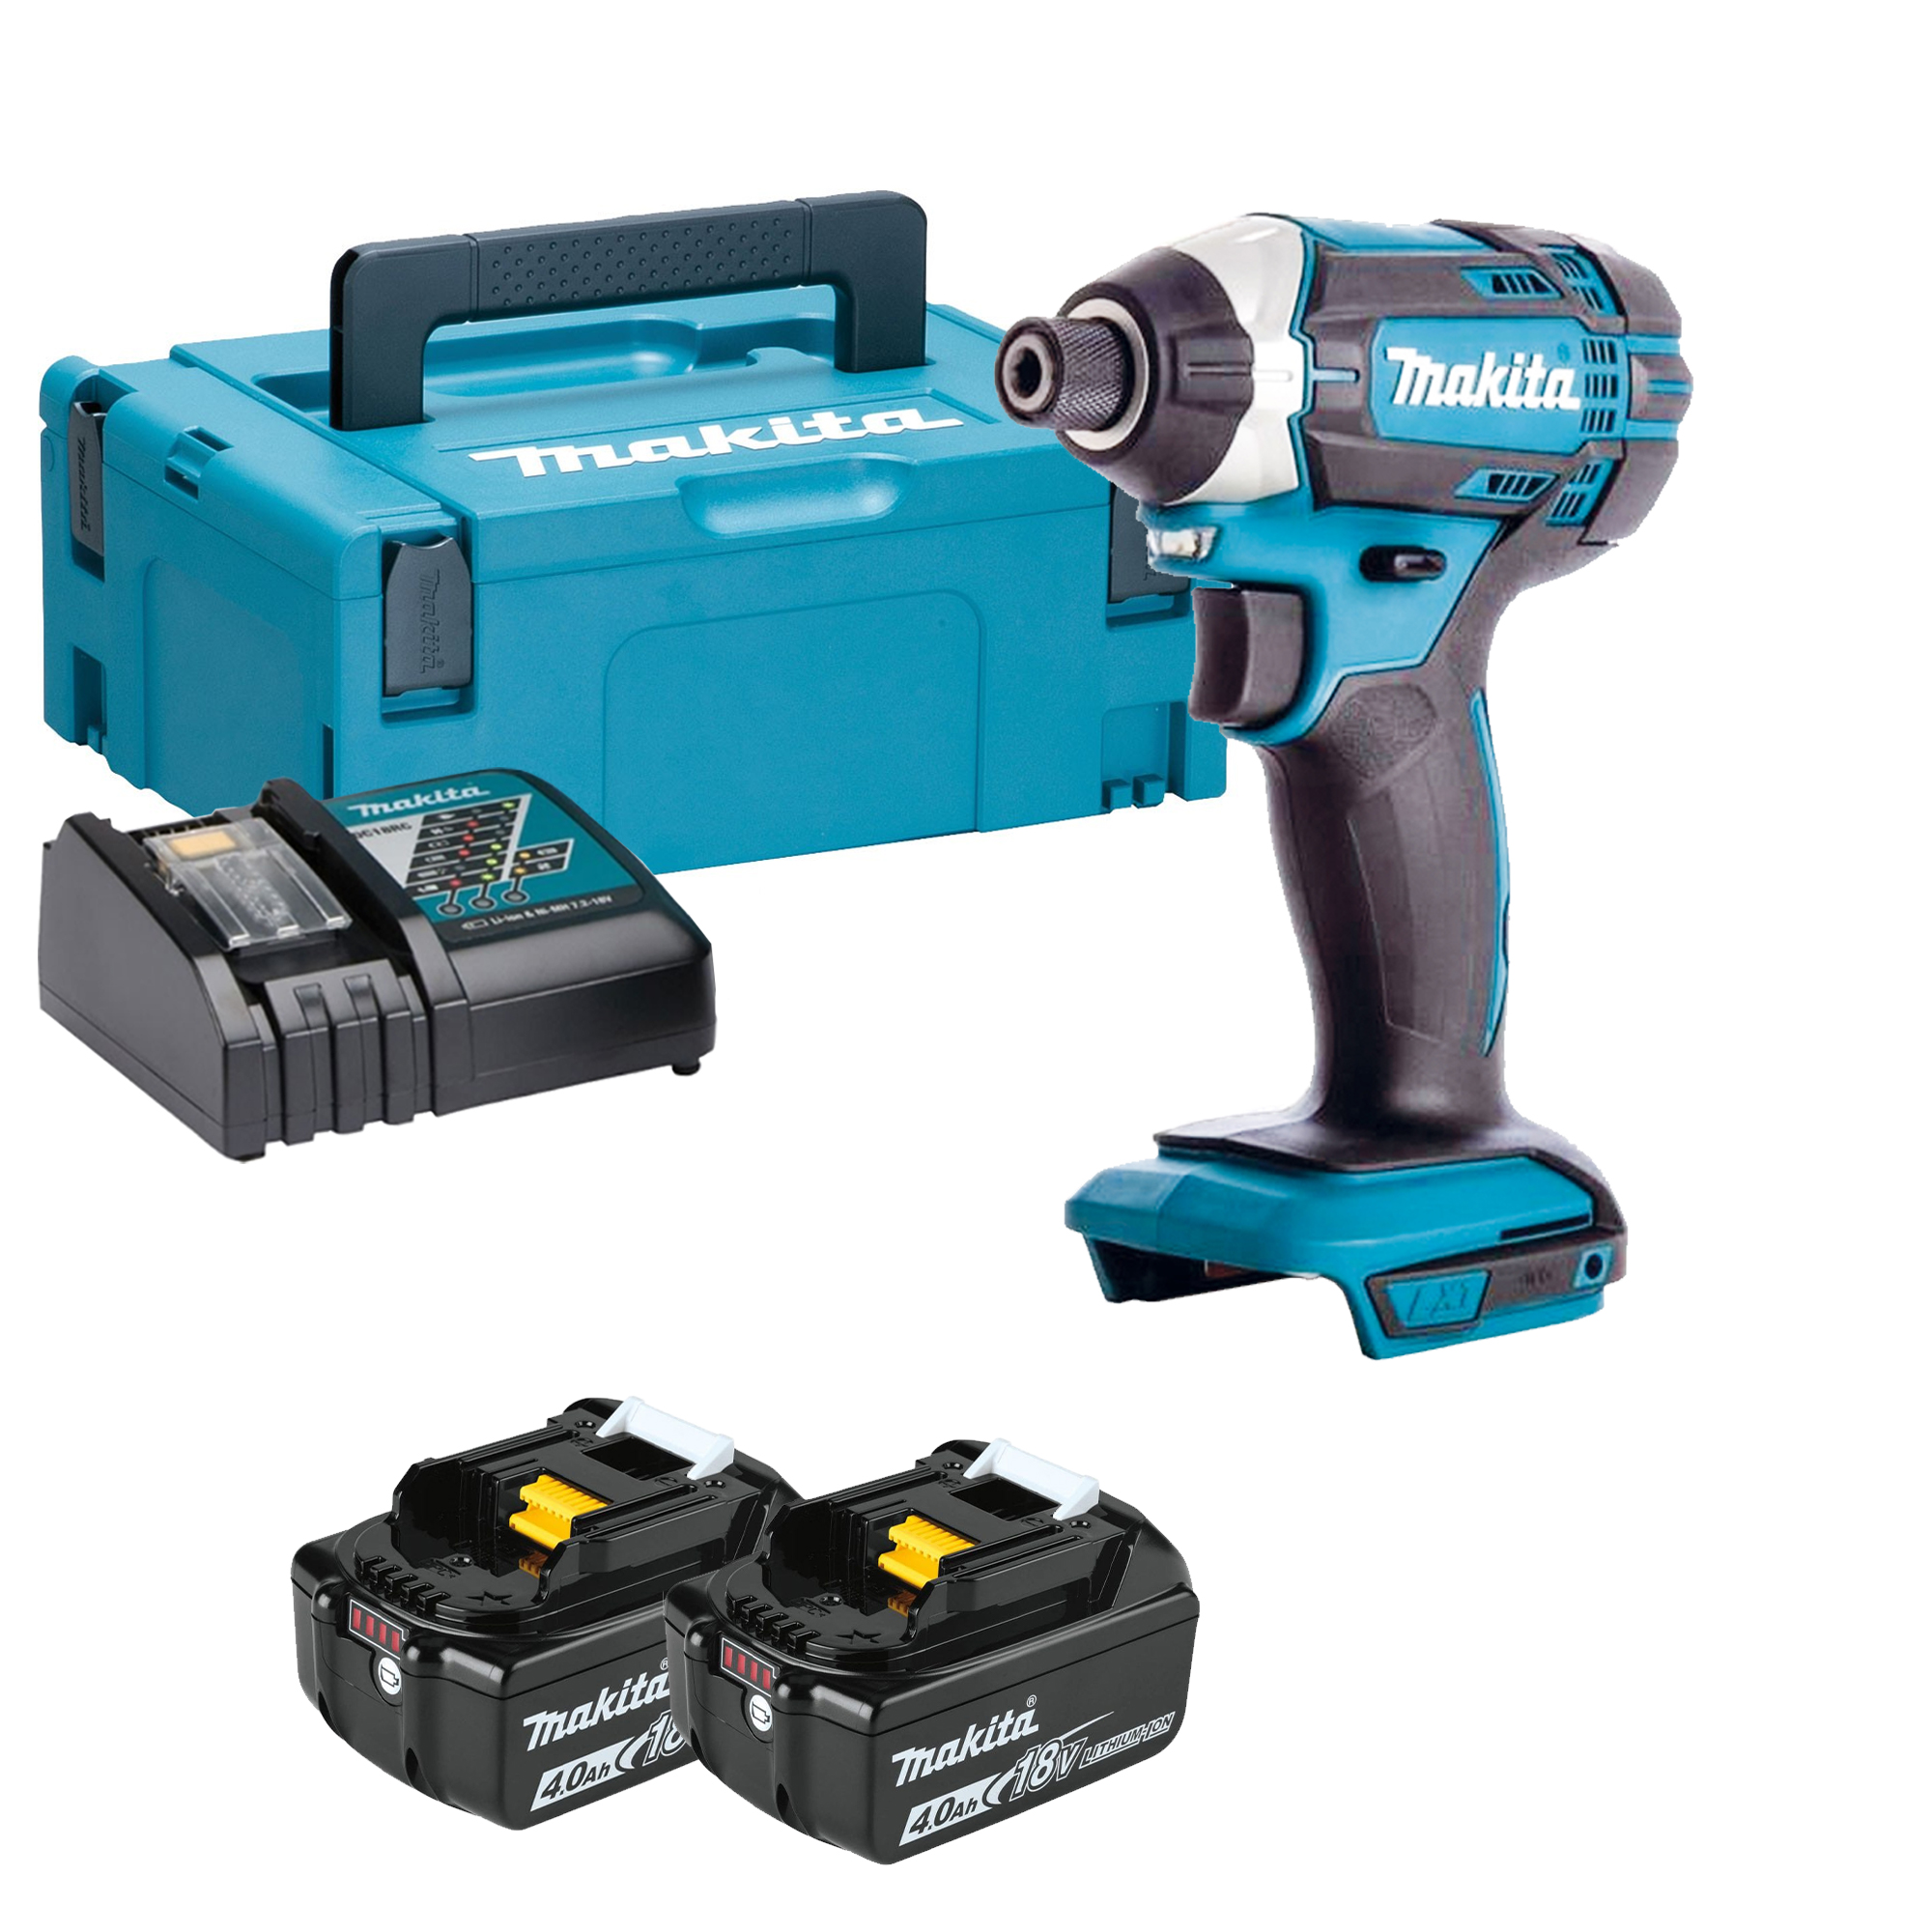 makita dtd152rmj makita 18v li ion lxt impact driver. Black Bedroom Furniture Sets. Home Design Ideas